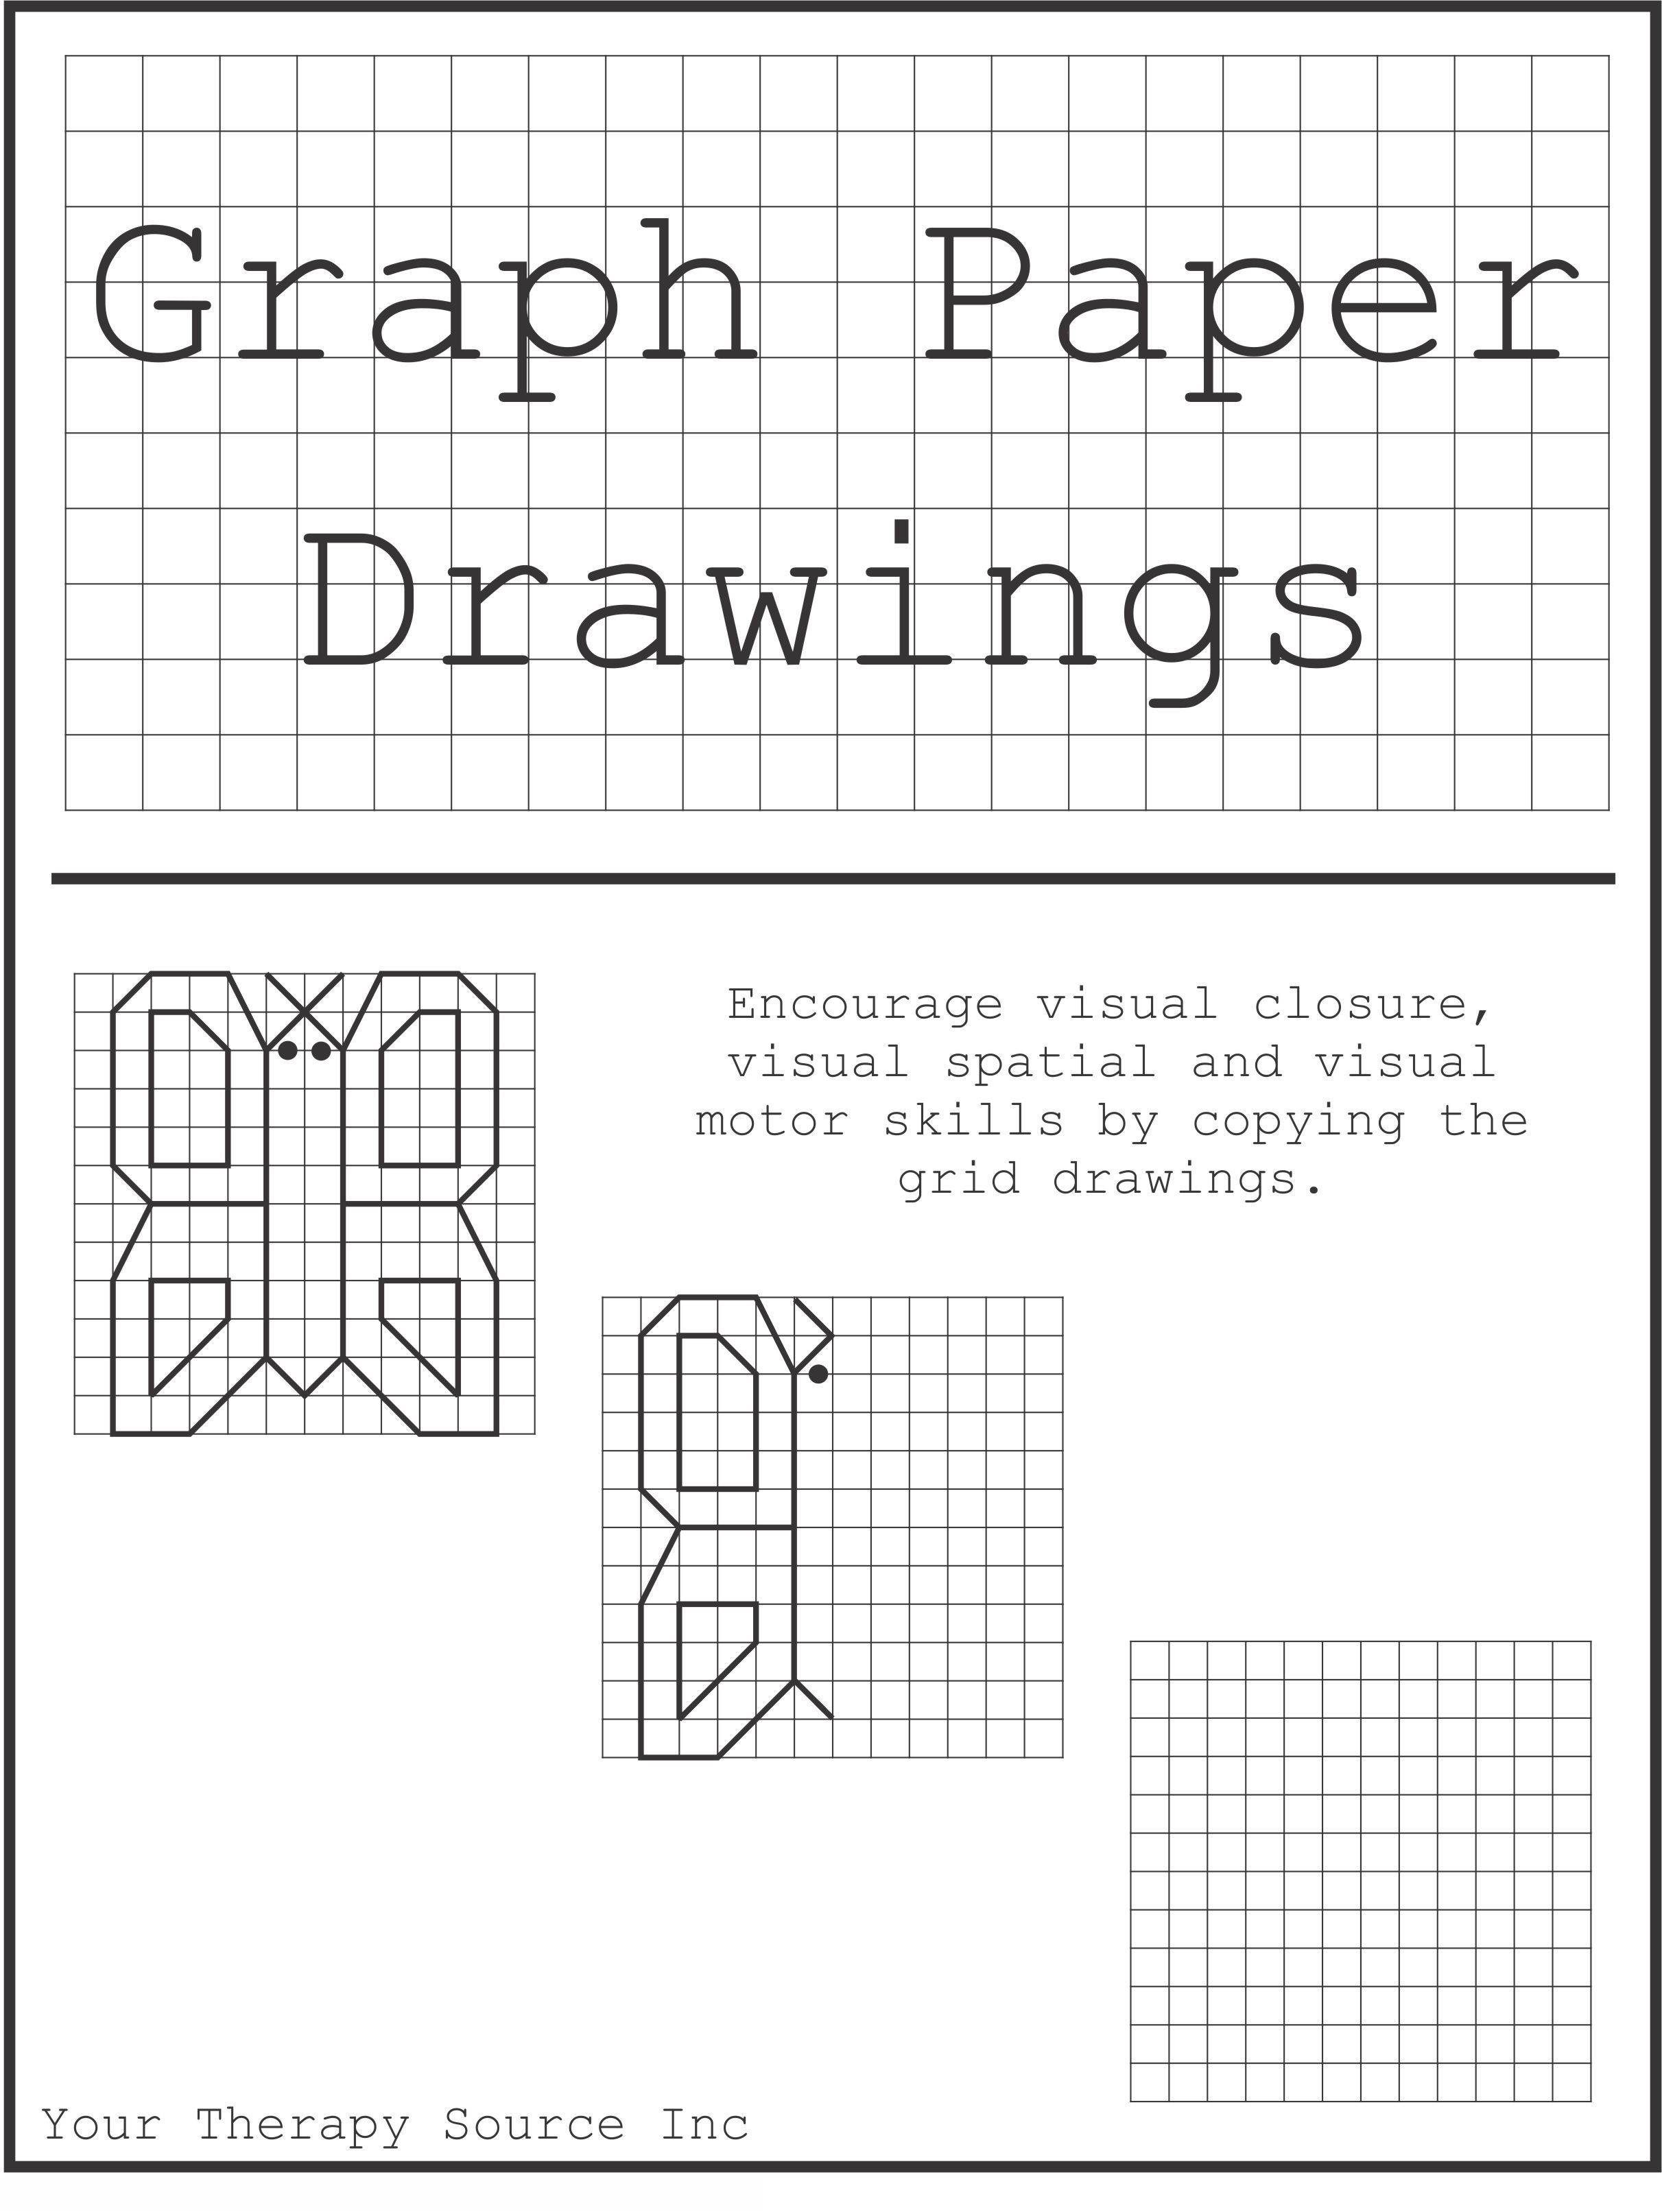 graph paper drawings visual perception graph paper drawings paper drawing drawings. Black Bedroom Furniture Sets. Home Design Ideas